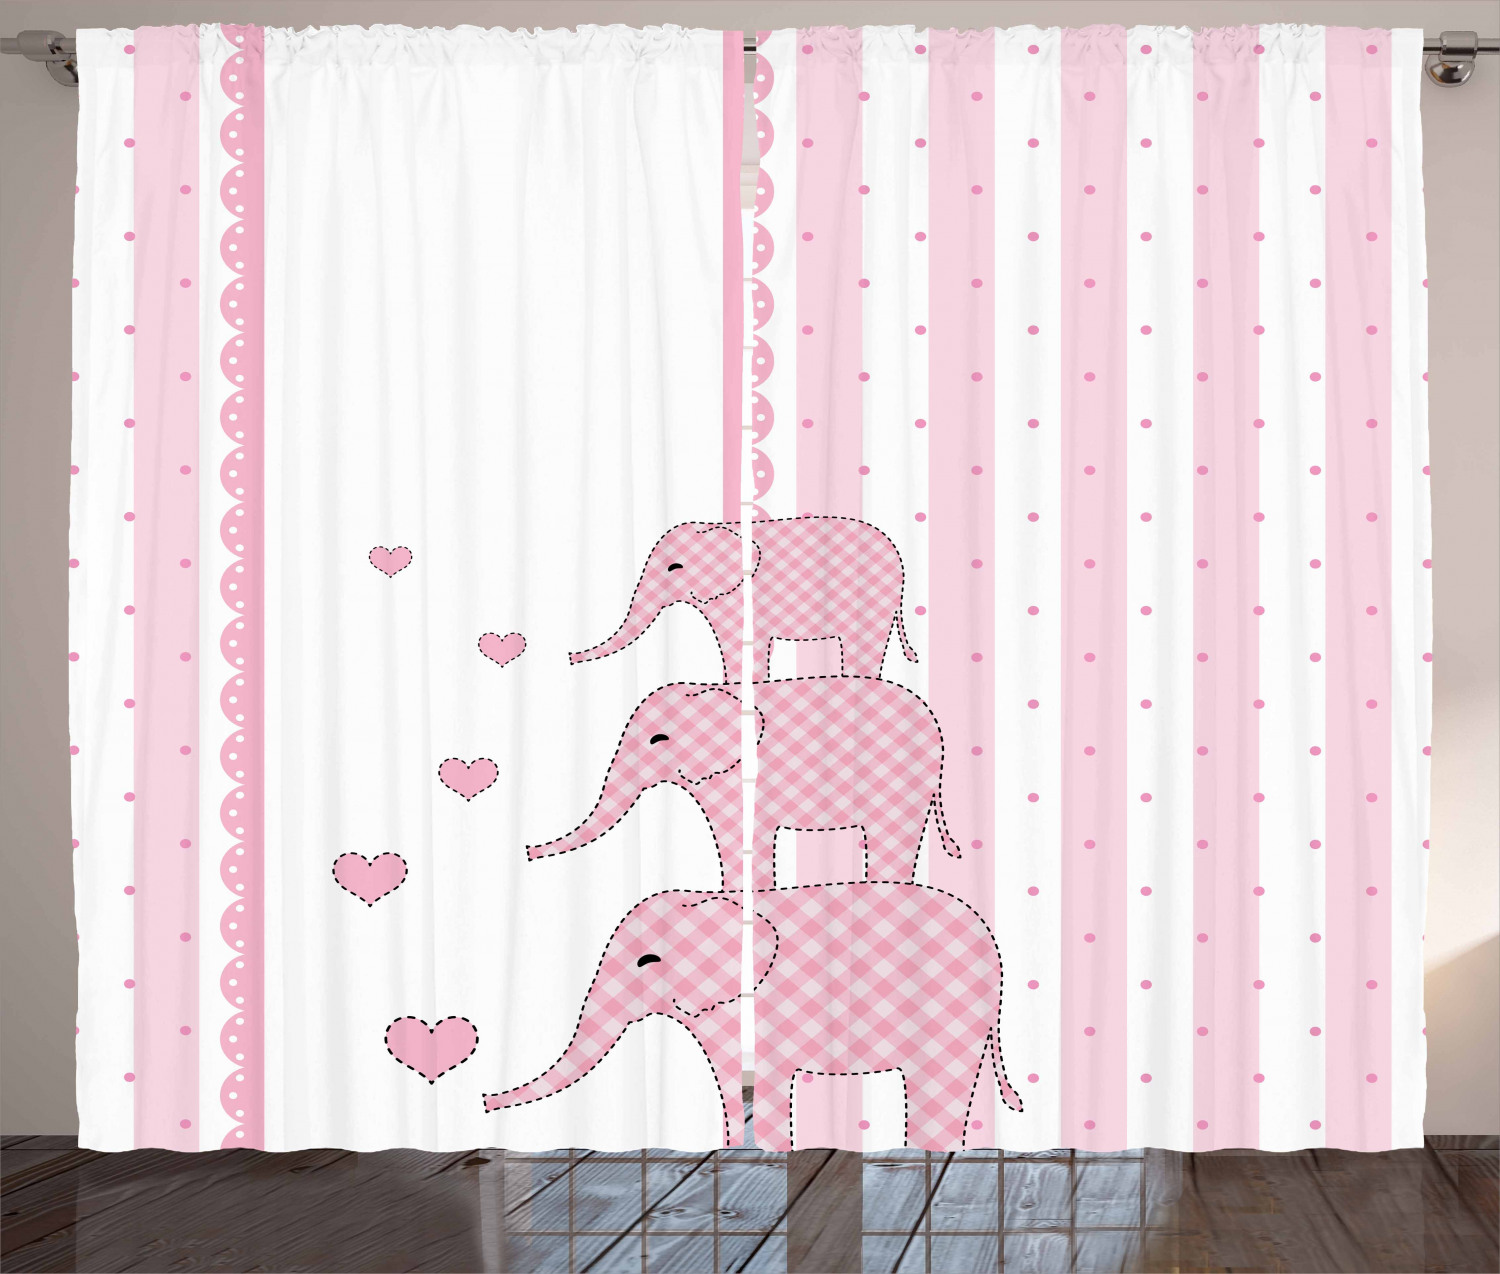 Elephant Nursery Curtains 2 Panels Set Vertical Striped Backdrop With Cute Pink Animals With Hearts Retro Window Drapes For Living Room Bedroom 108w X 63l Inches Pale Pink White By Ambesonne